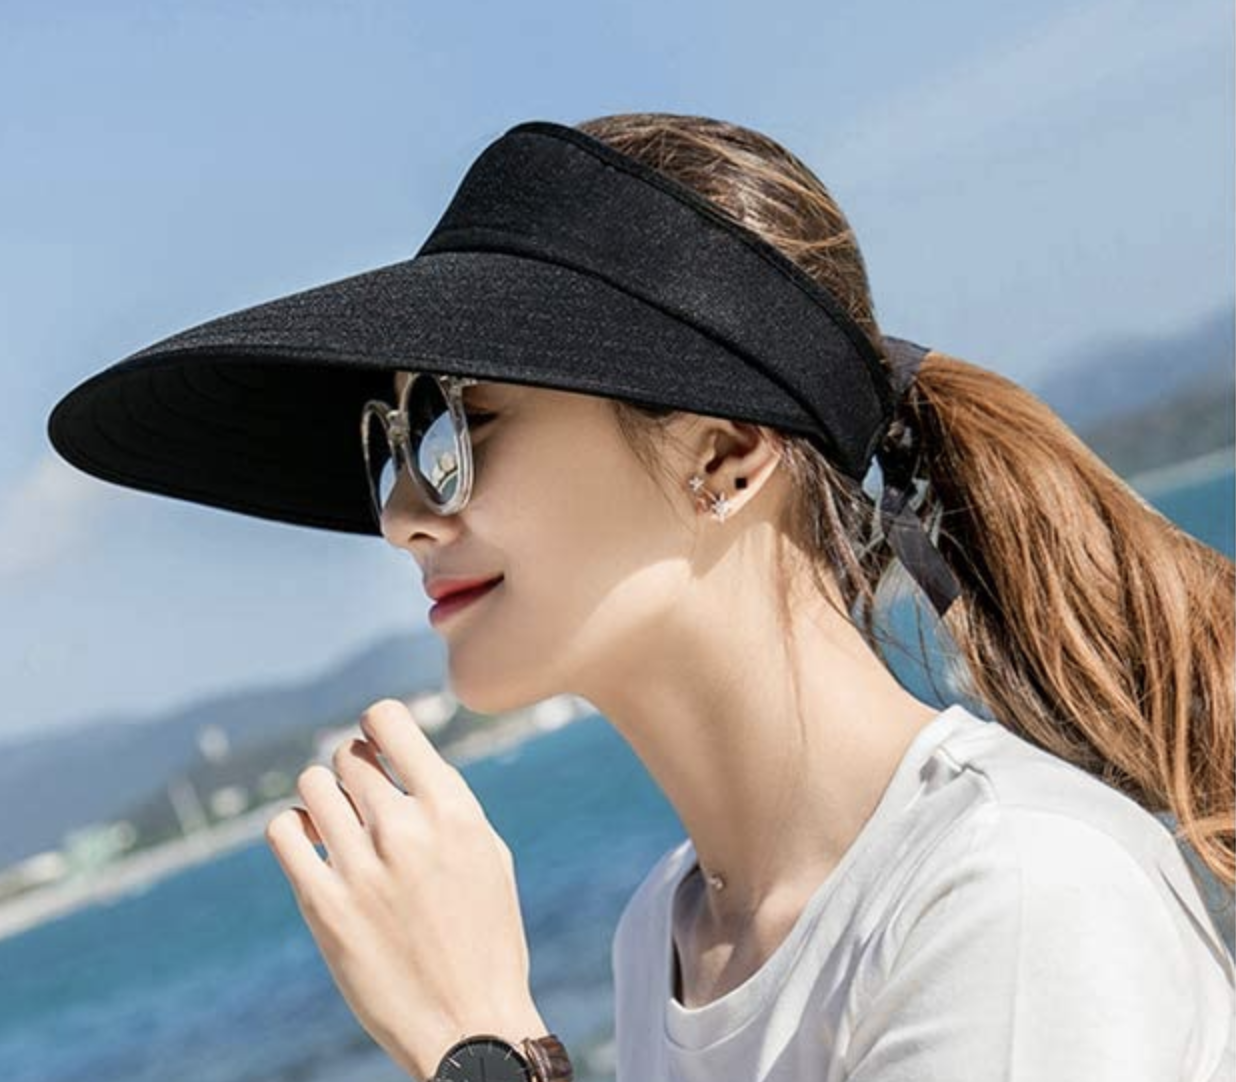 A model in a black visor with a long bill that shades their face